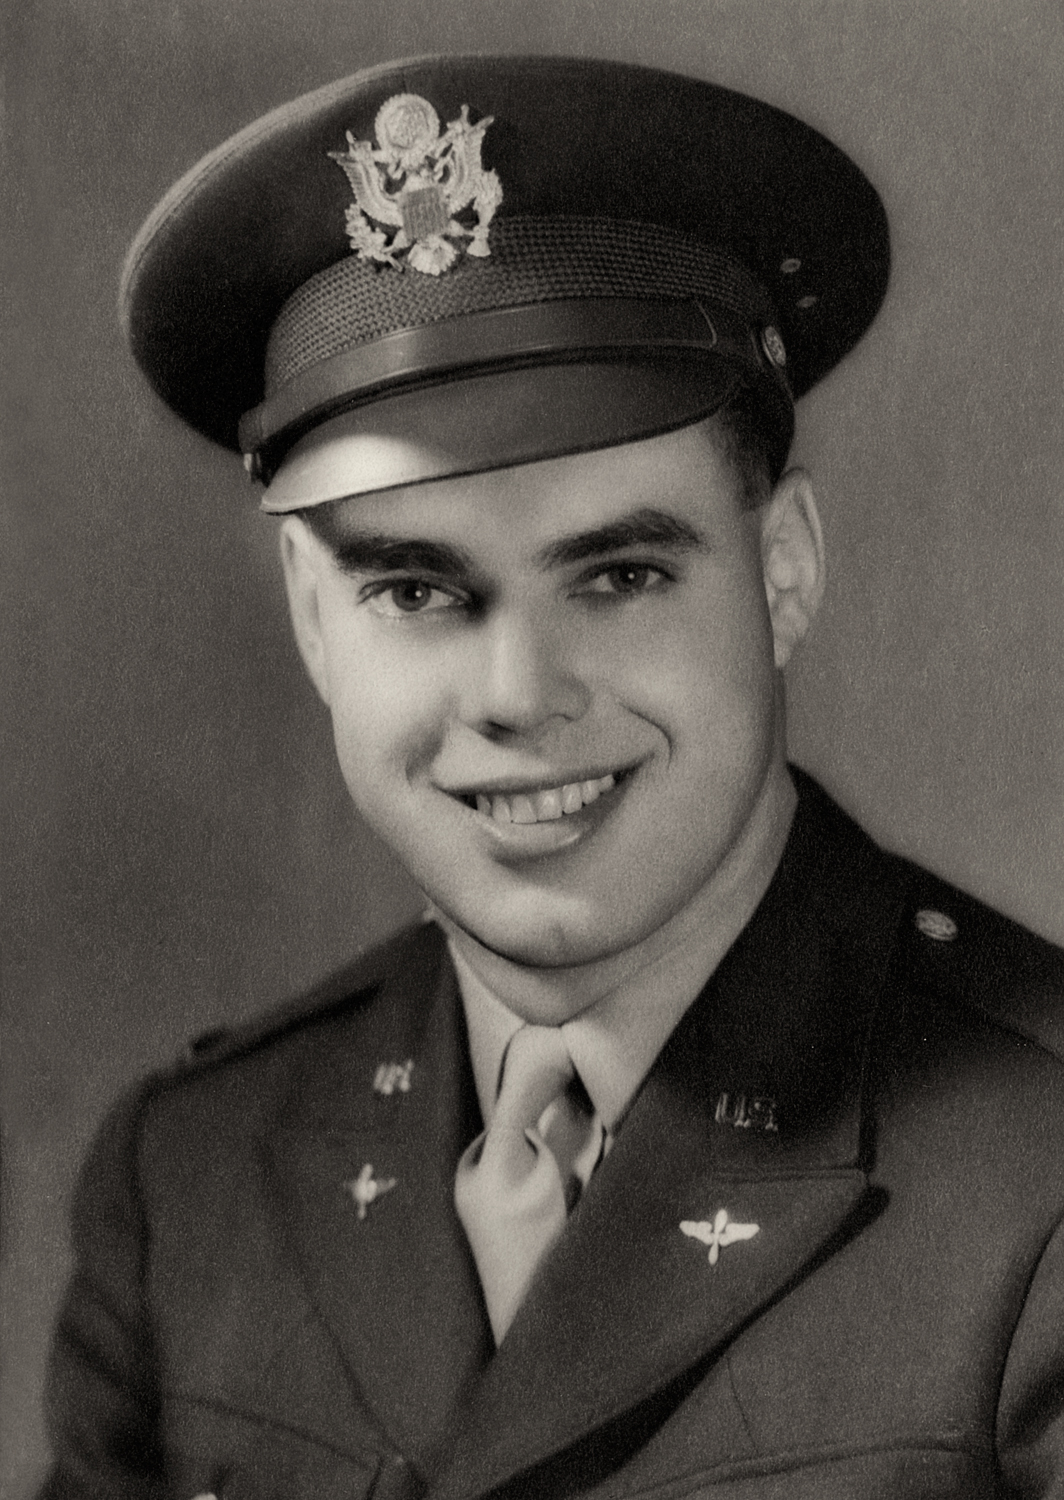 Doug in the Army